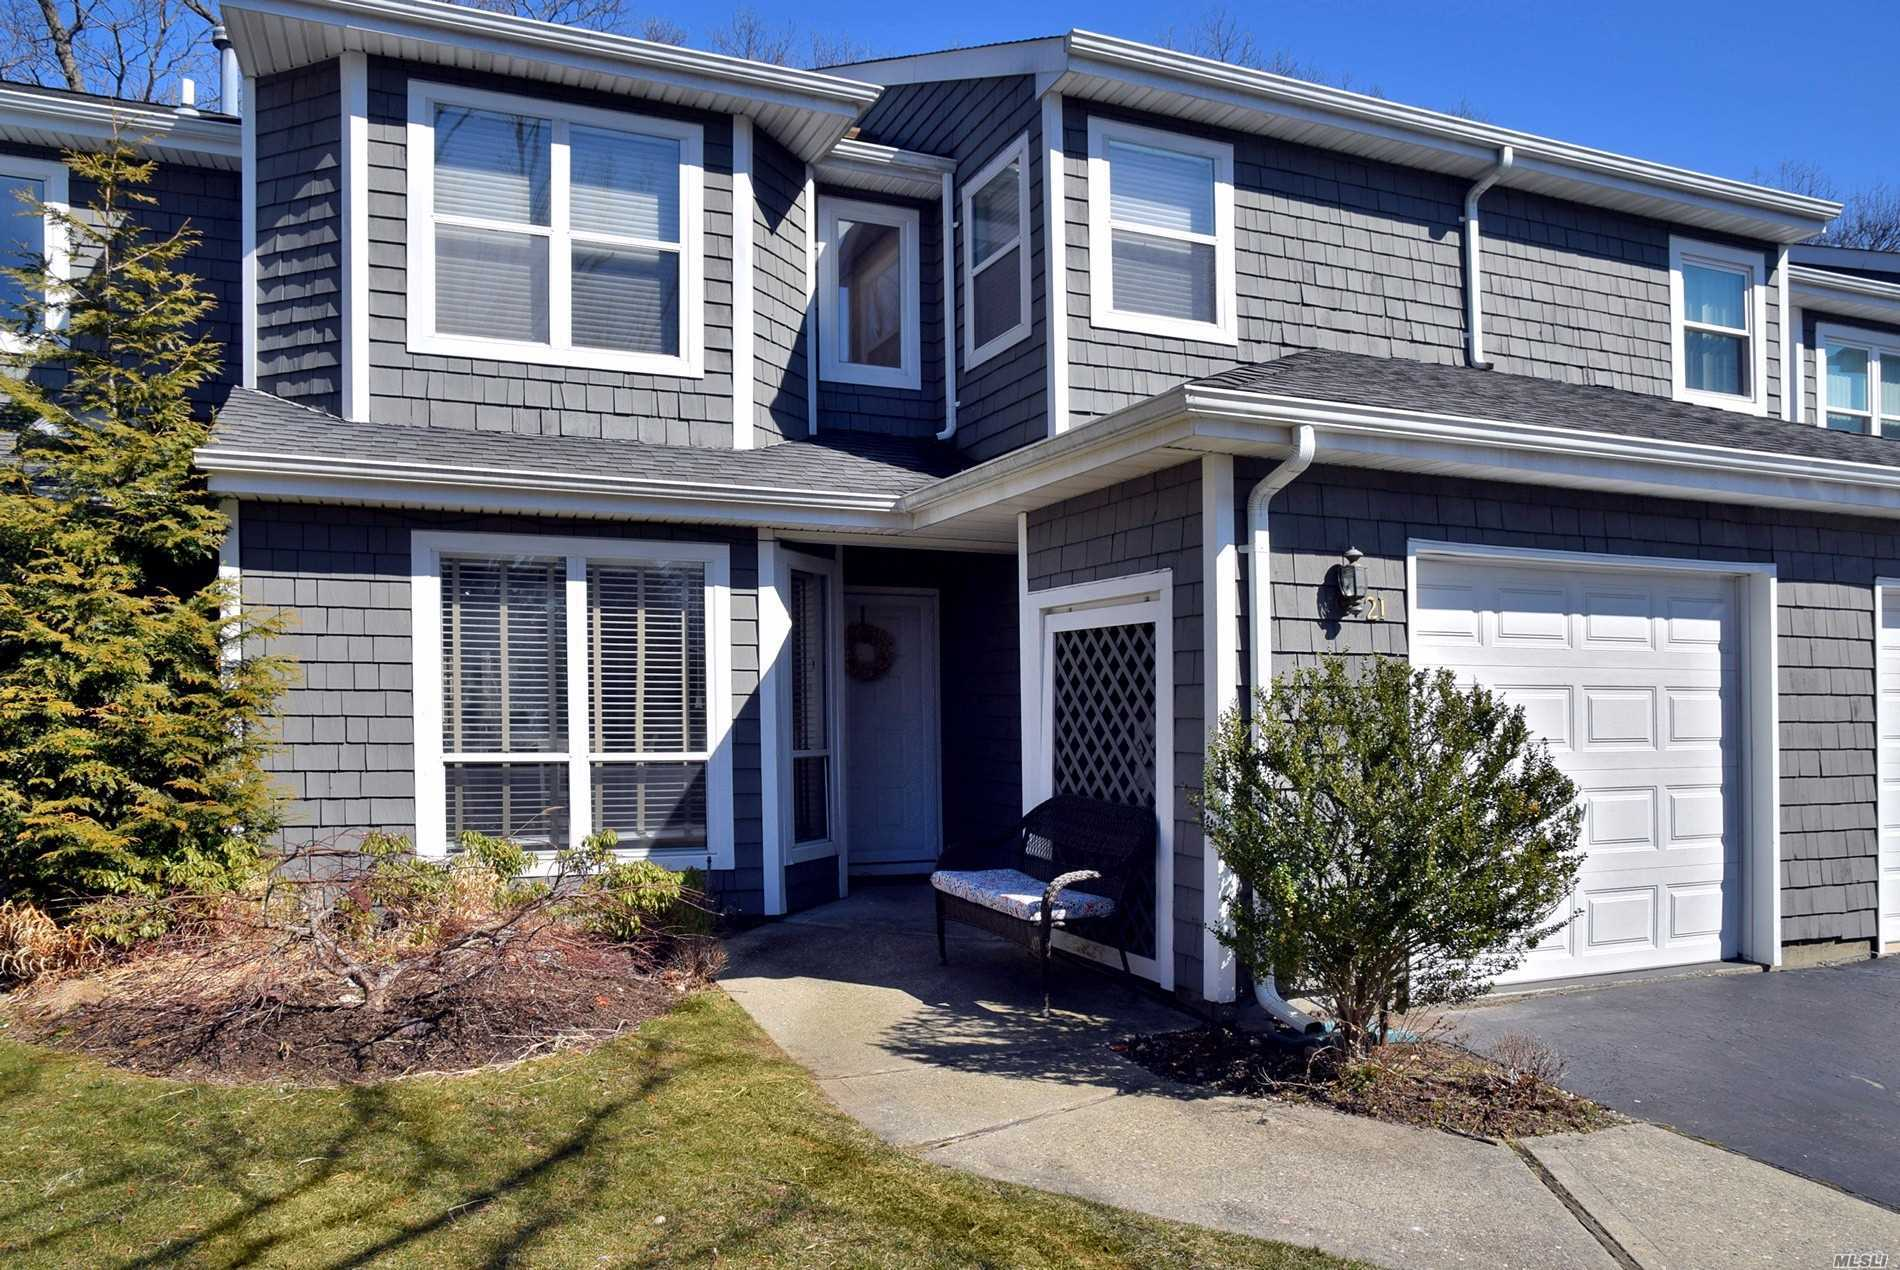 Beautiful, Spacious 3 Bedroom Condo In Gated Community. Formal Dining Room w, French Doors to Patio. Oversized Mstr Bdrm w Beautiful New Bathrm, 2nd Bdrm w Loft, Clubhouse, Gym, Pool, Tennis Included. Close to Parkways, Shopping, Restaurants,  Blue Ribbon Commack SD,